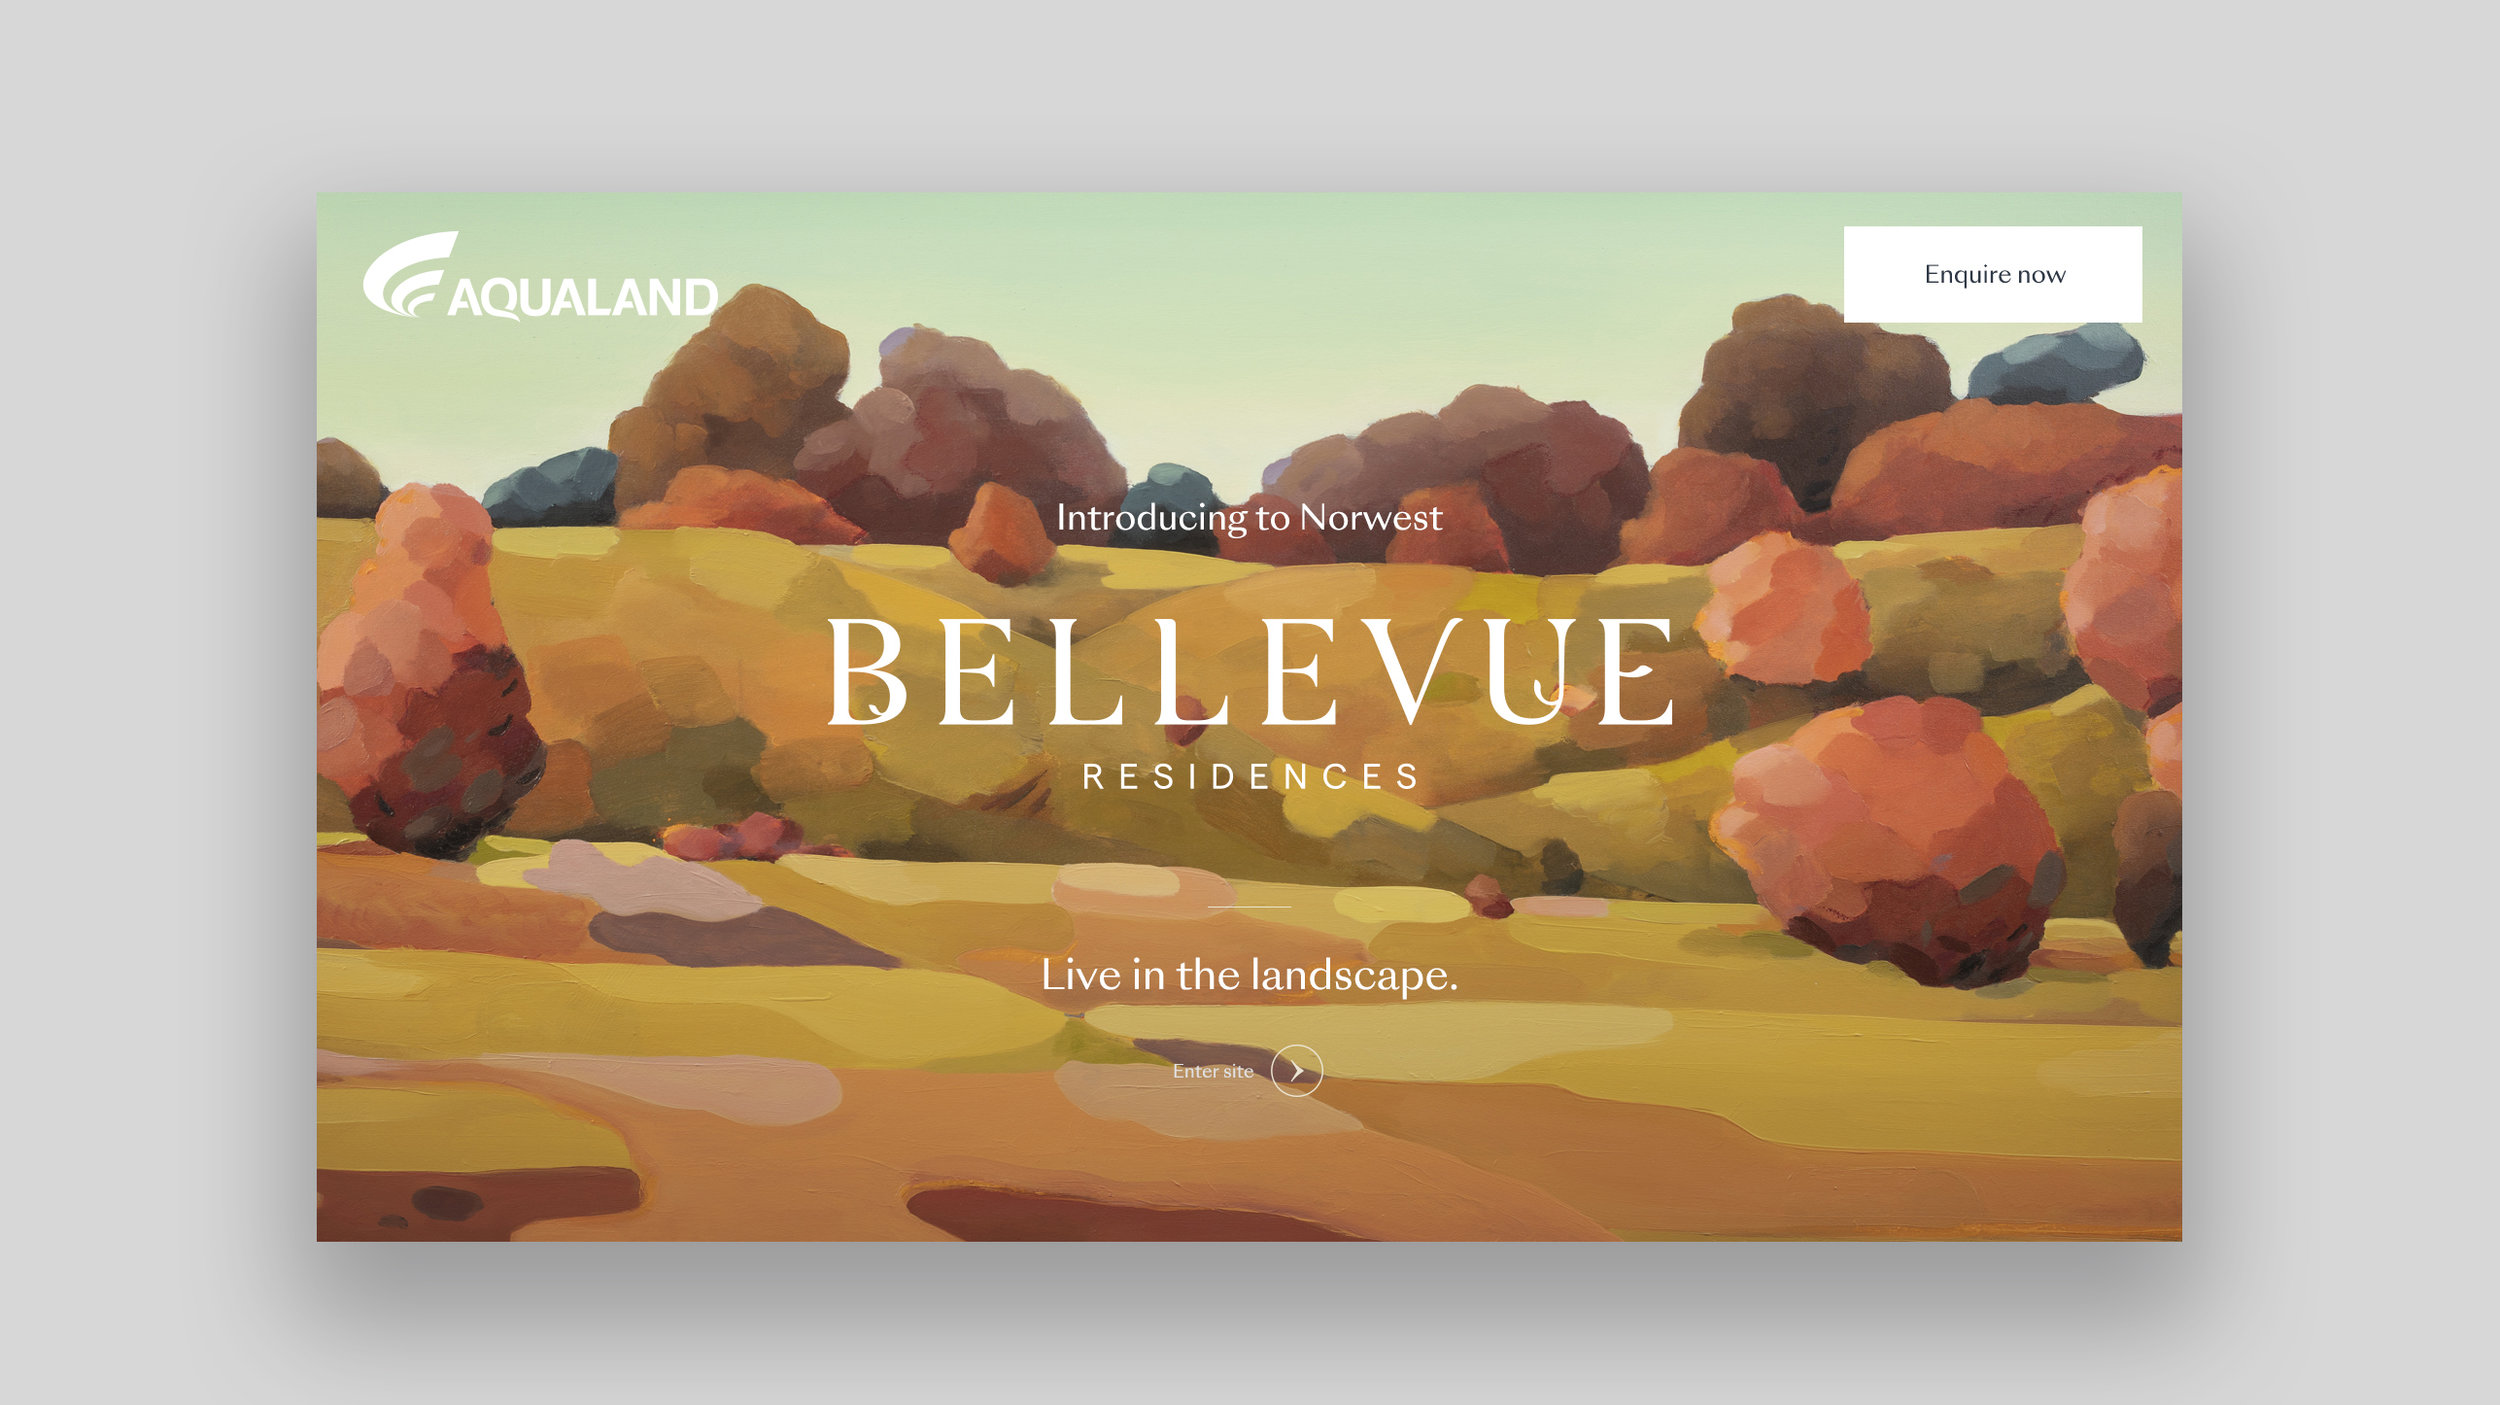 aqualand_bellevue_residences_brand_identity_property_sydney_marketing copy 2.jpg